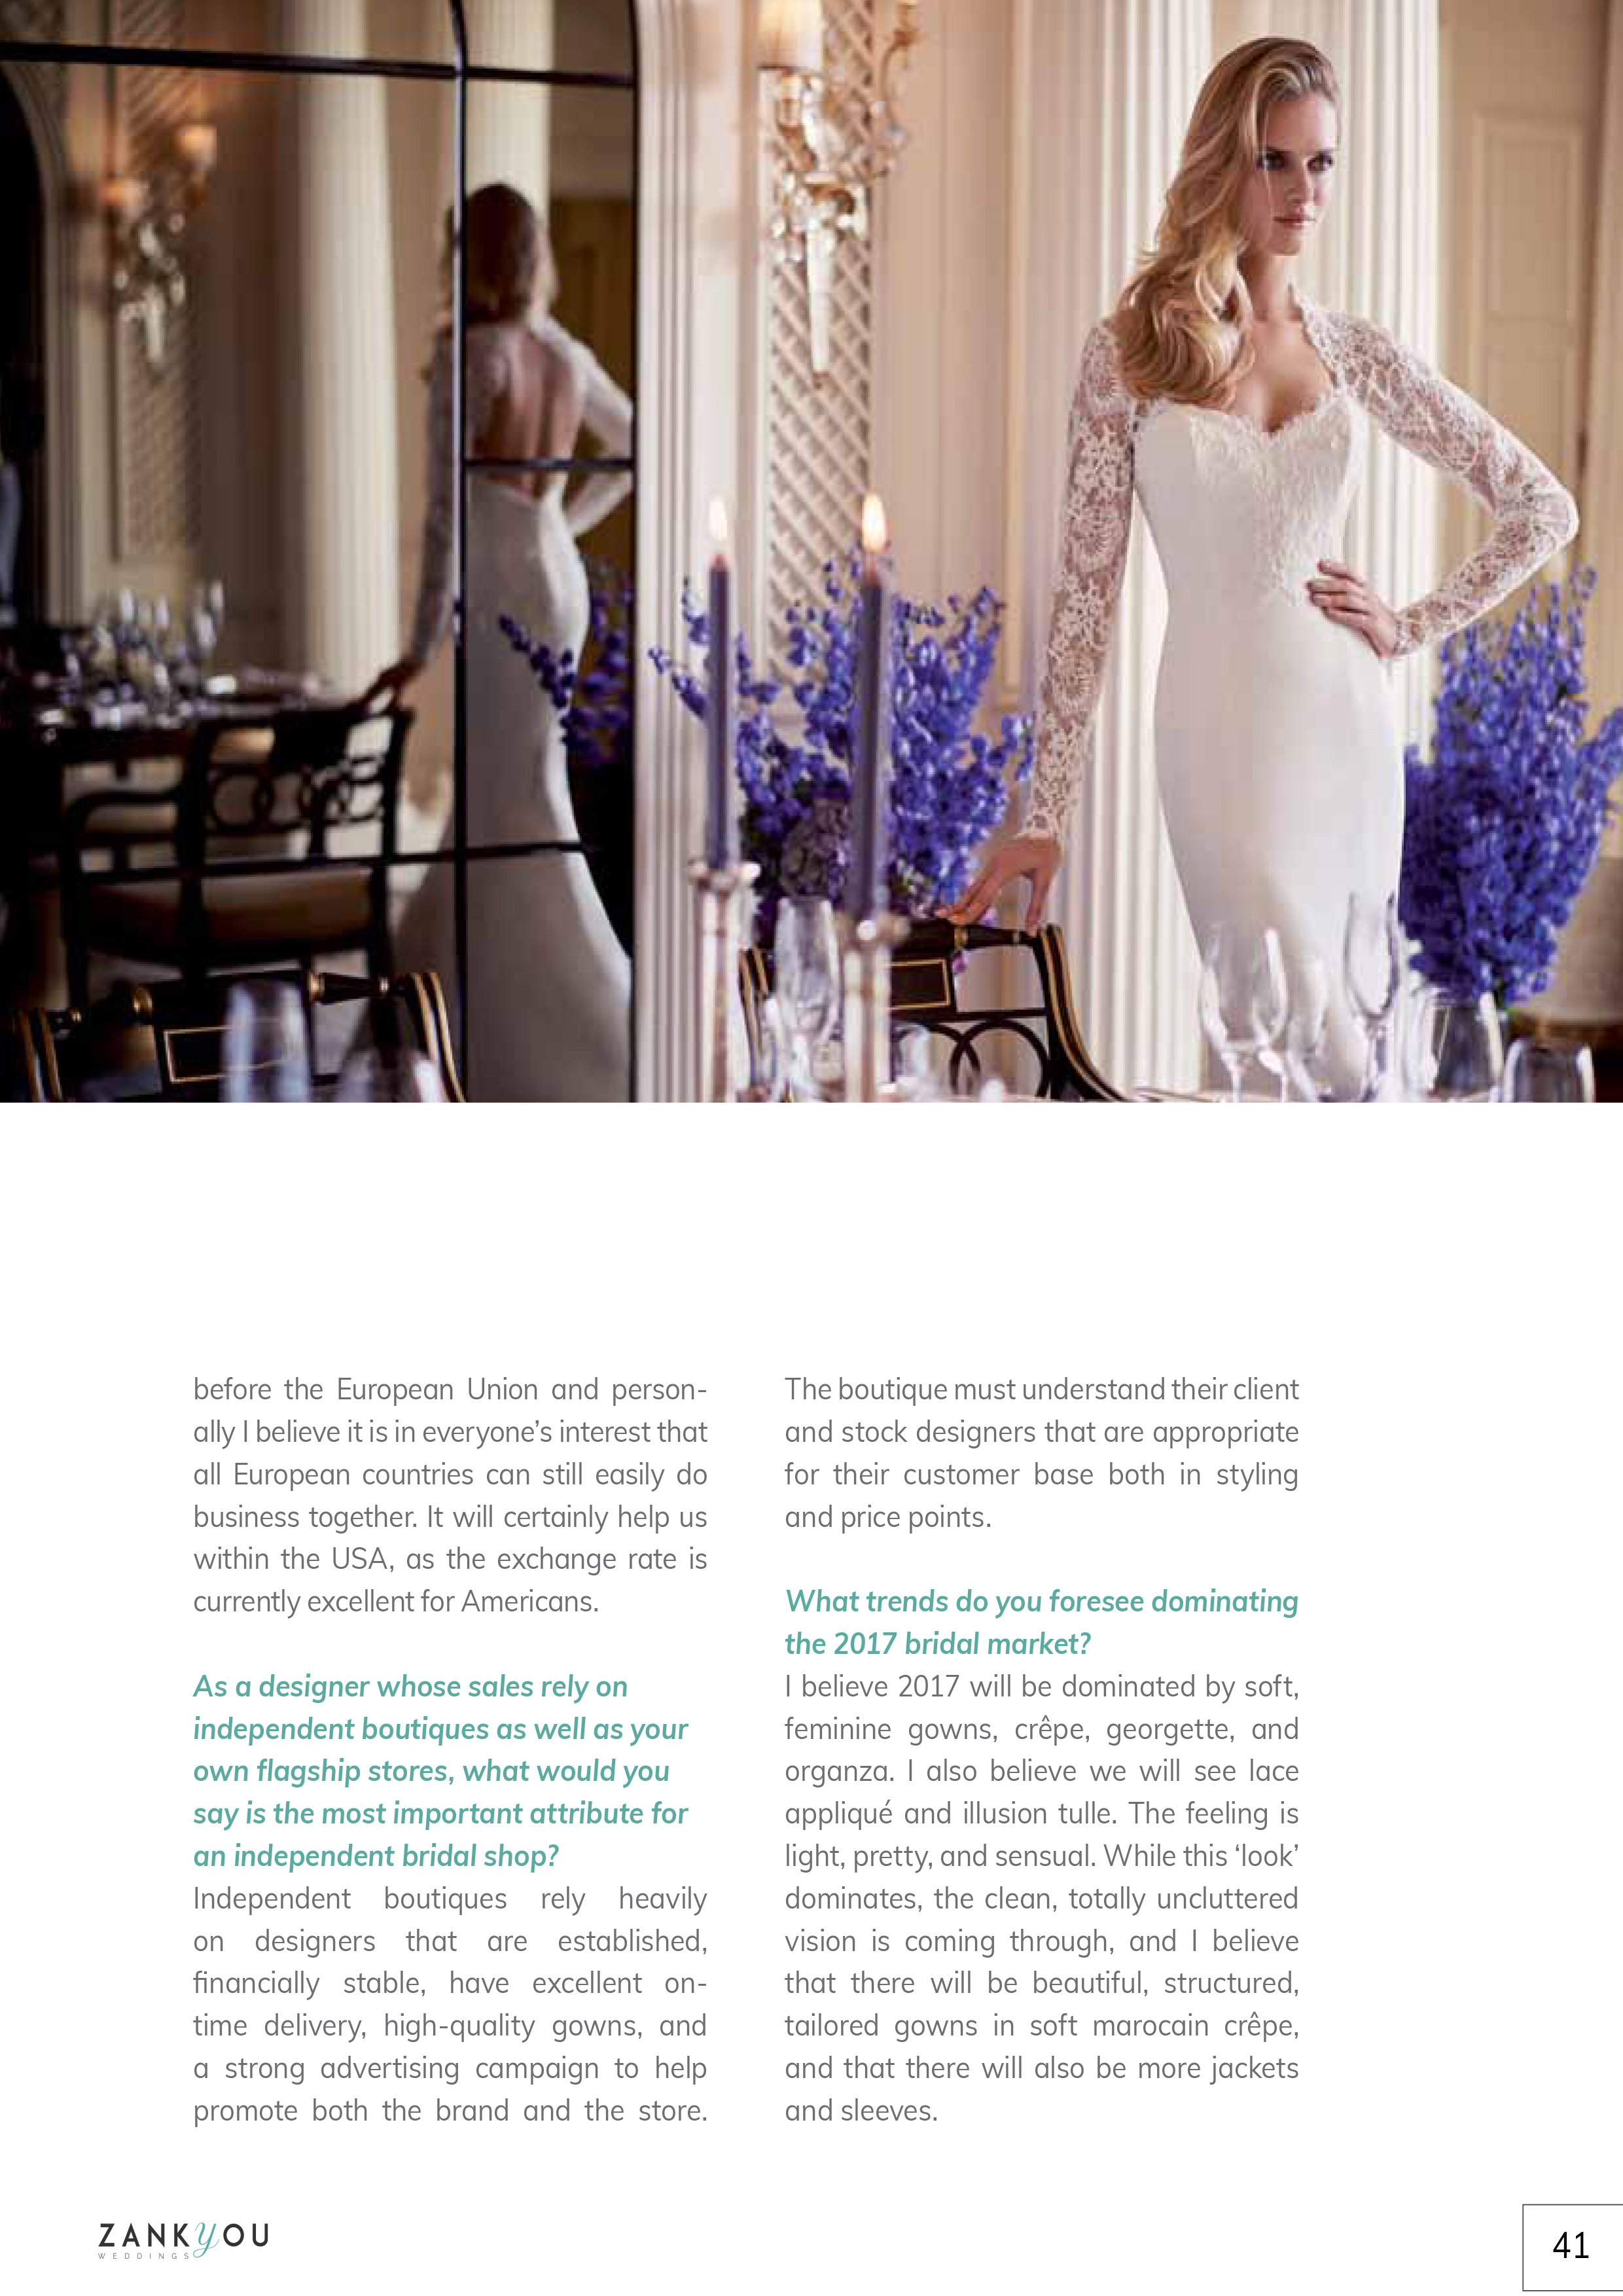 Panache designer wedding dresses by Caroline Castigliano